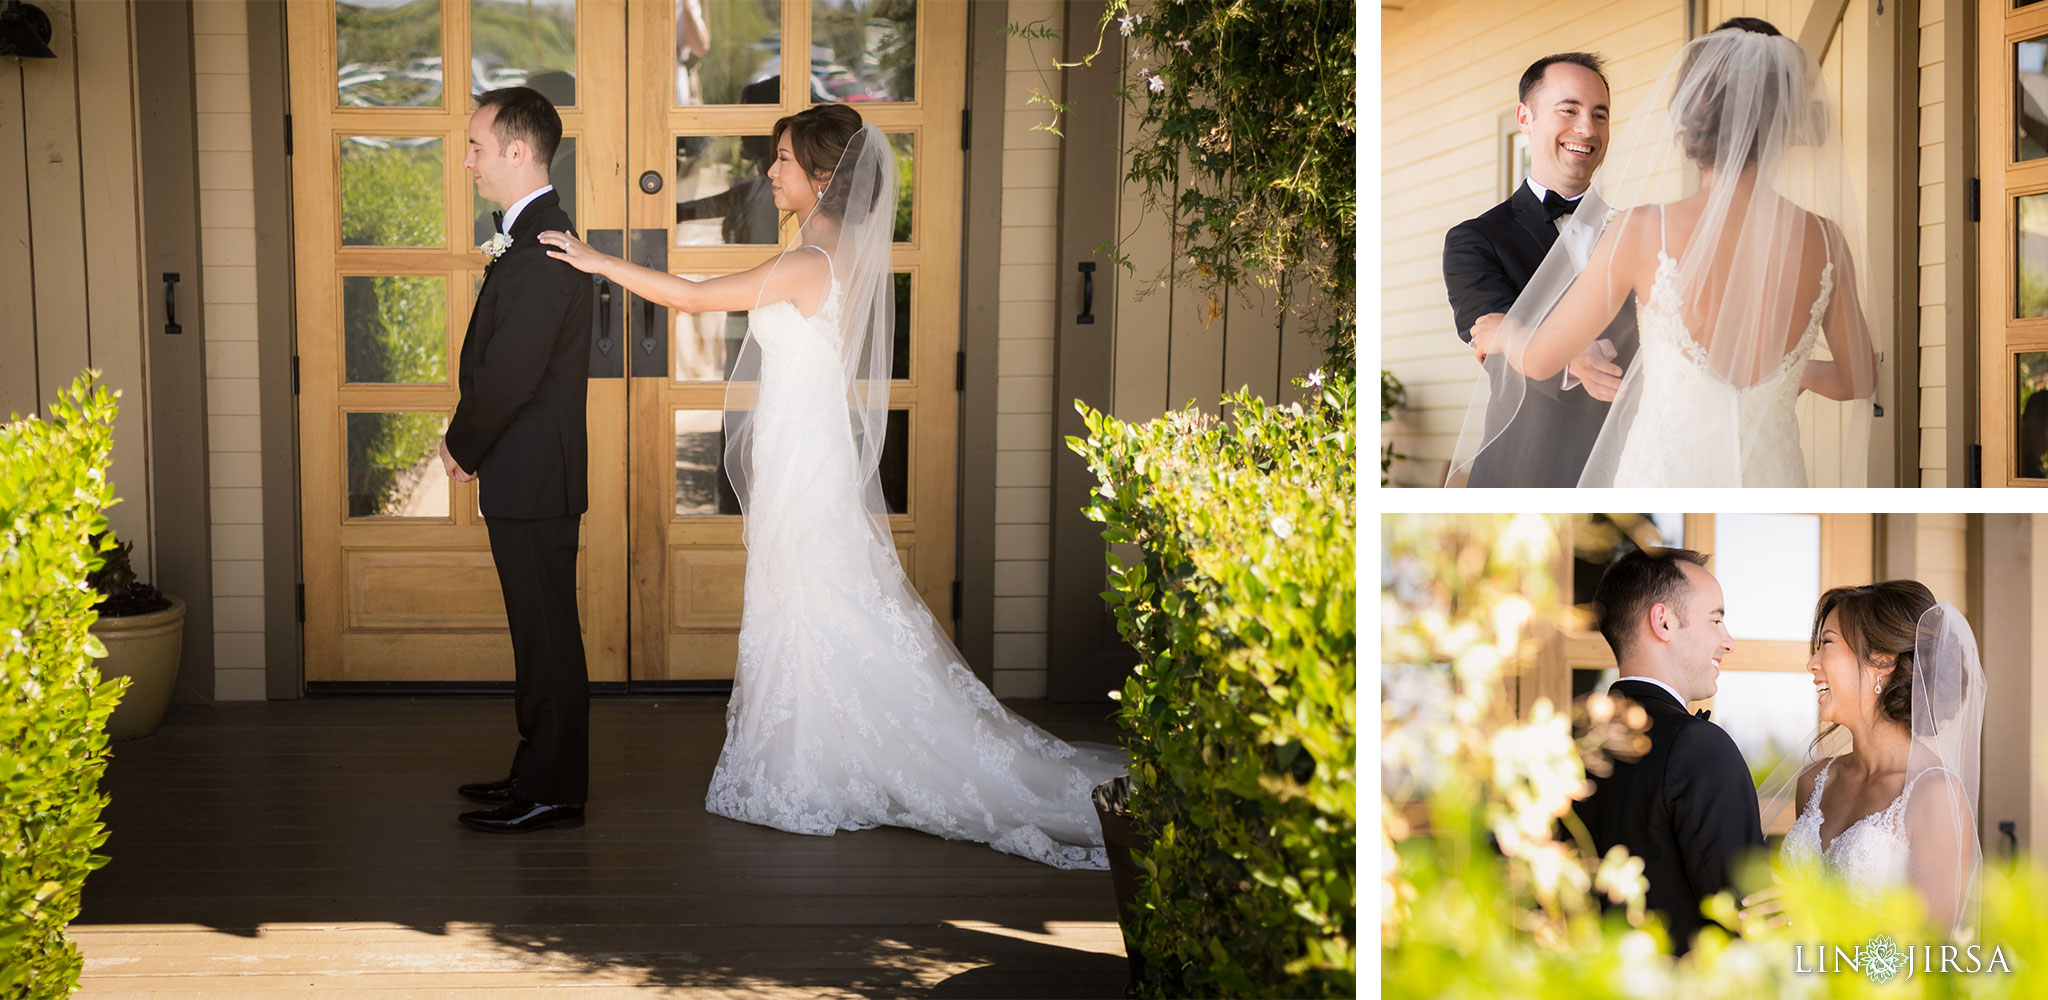 11 Ponte Winery Vineyard Garden Temecula First Look Wedding Photography